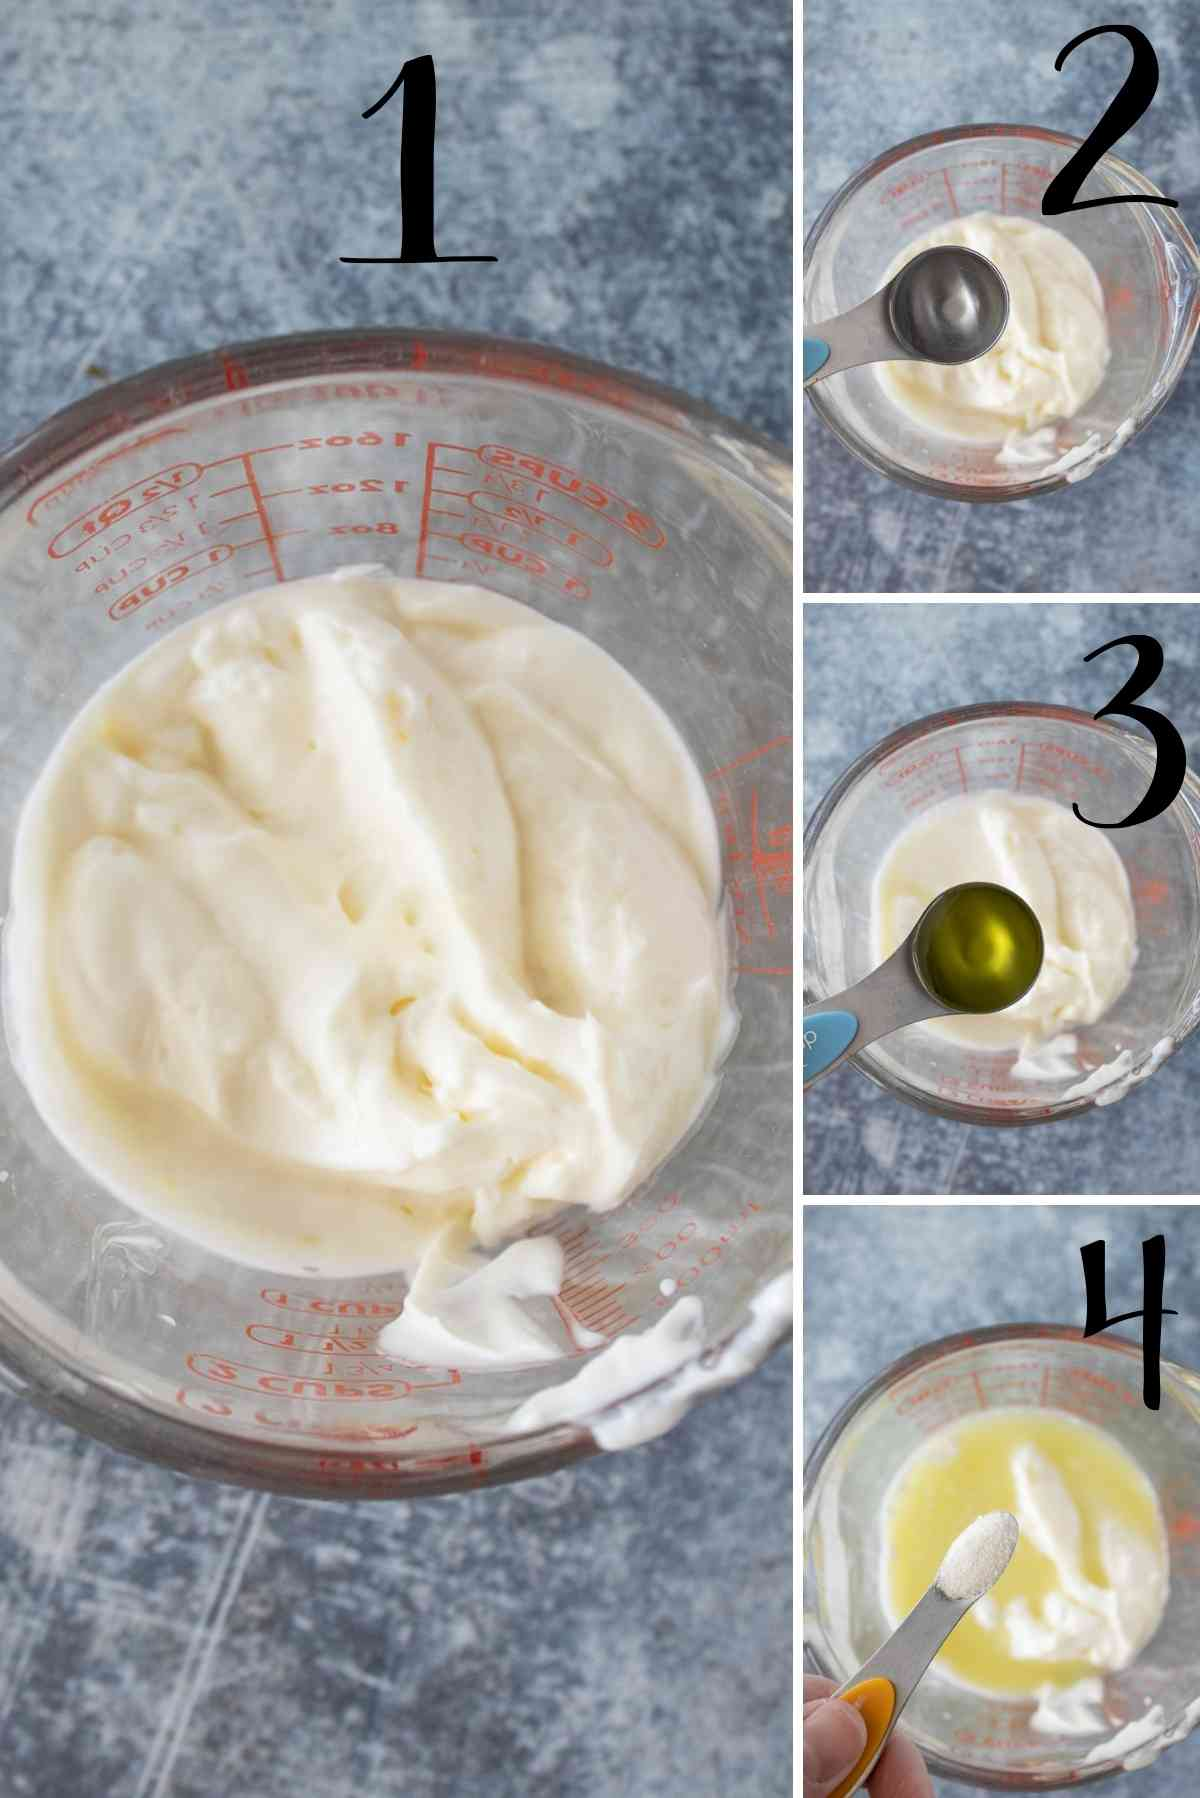 Mayo in a bowl with vinegar, dill pickle juice, and sugar added.